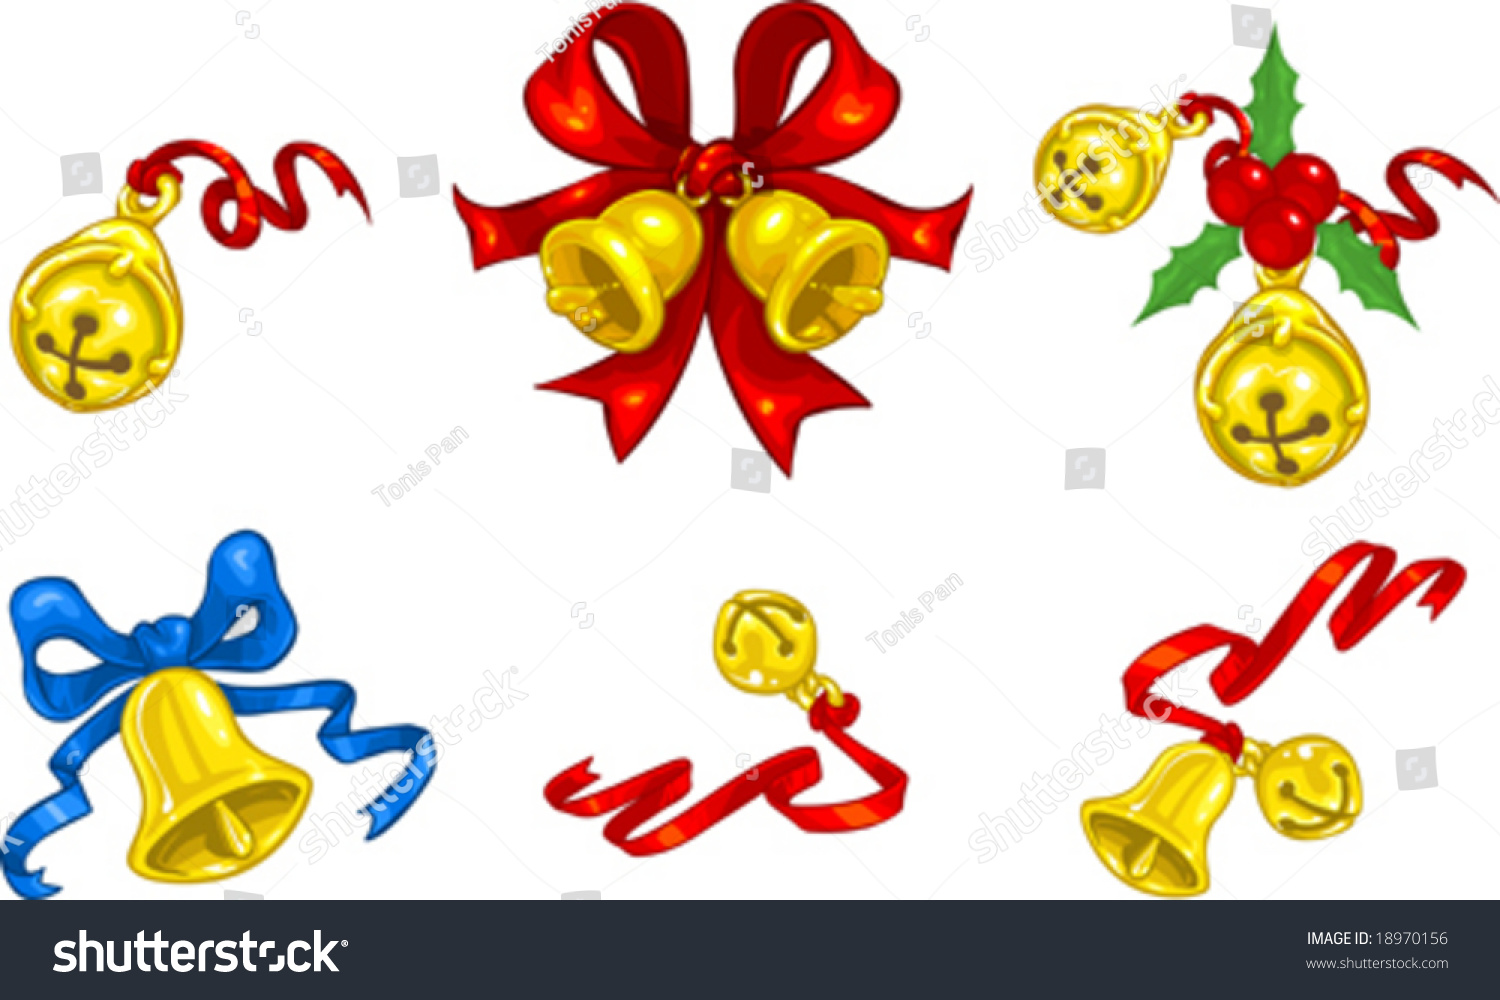 Vector Clip Art Illustration Of Christmas Bells And Jingle Bells With  Ribbons And Bows. Hand